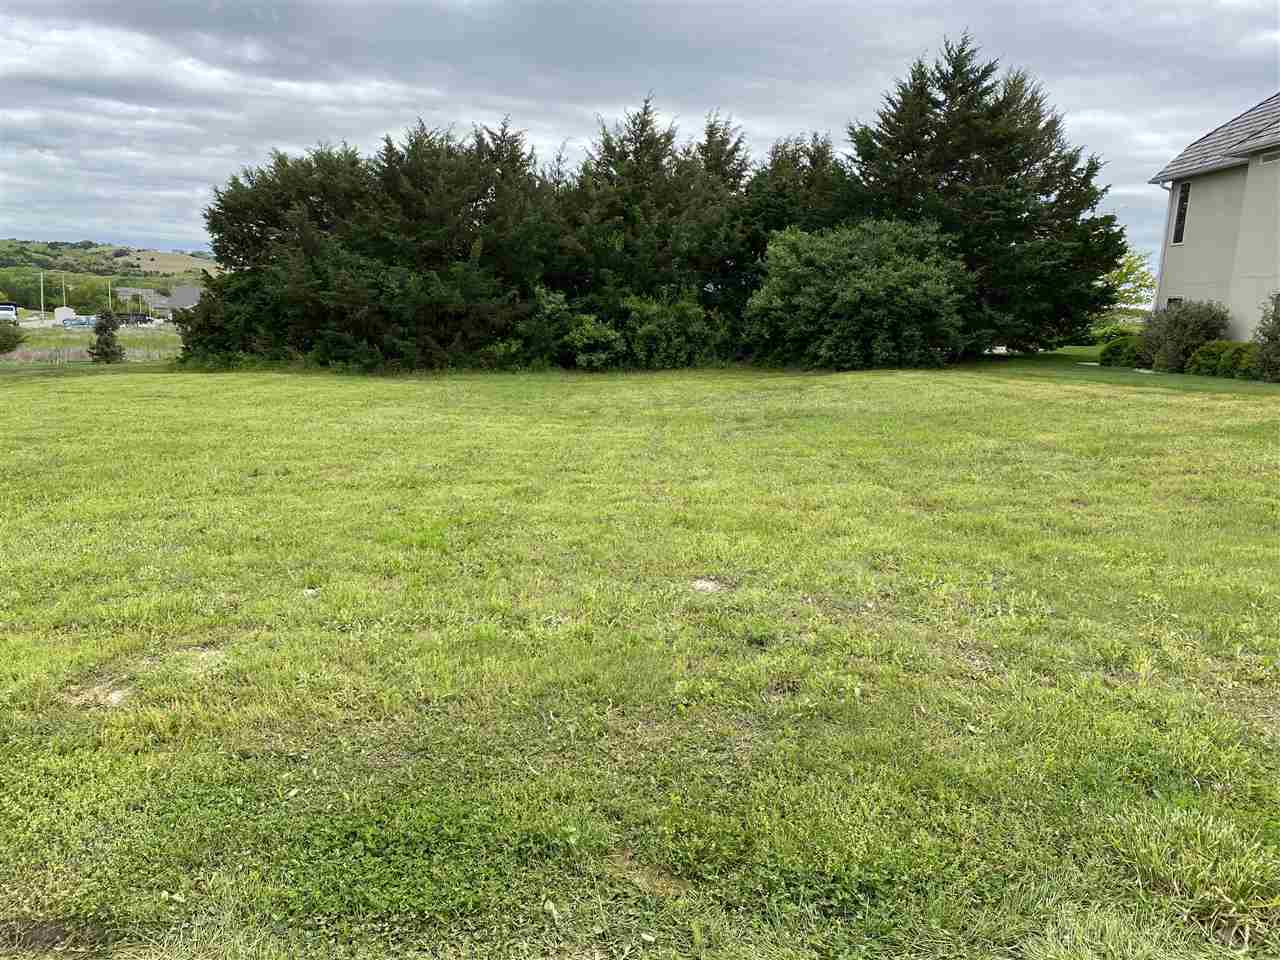 Don't miss this opportunity to build your dream home in this highly desirable neighborhood. One of the last building sites available in the exclusive Wyndham Heights subdivision. 1/3 acre private lot with mature trees at the back end of the yard & located at the end of the cul de sac. No Special Taxes!